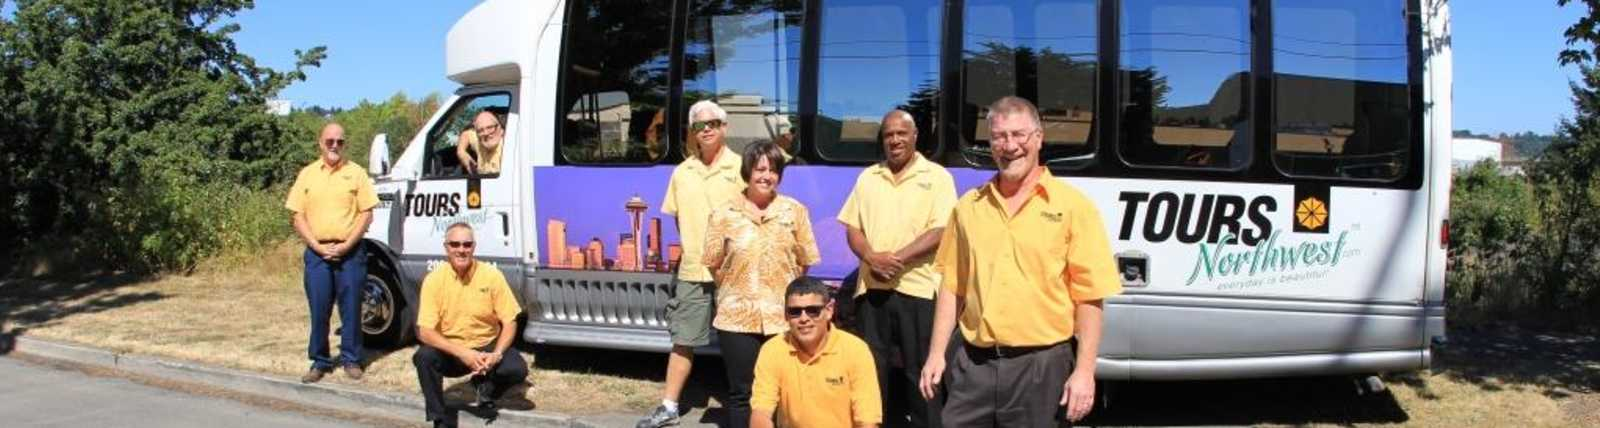 Owner Dan Malmanger stands with members of his staff in front of a tour bus.